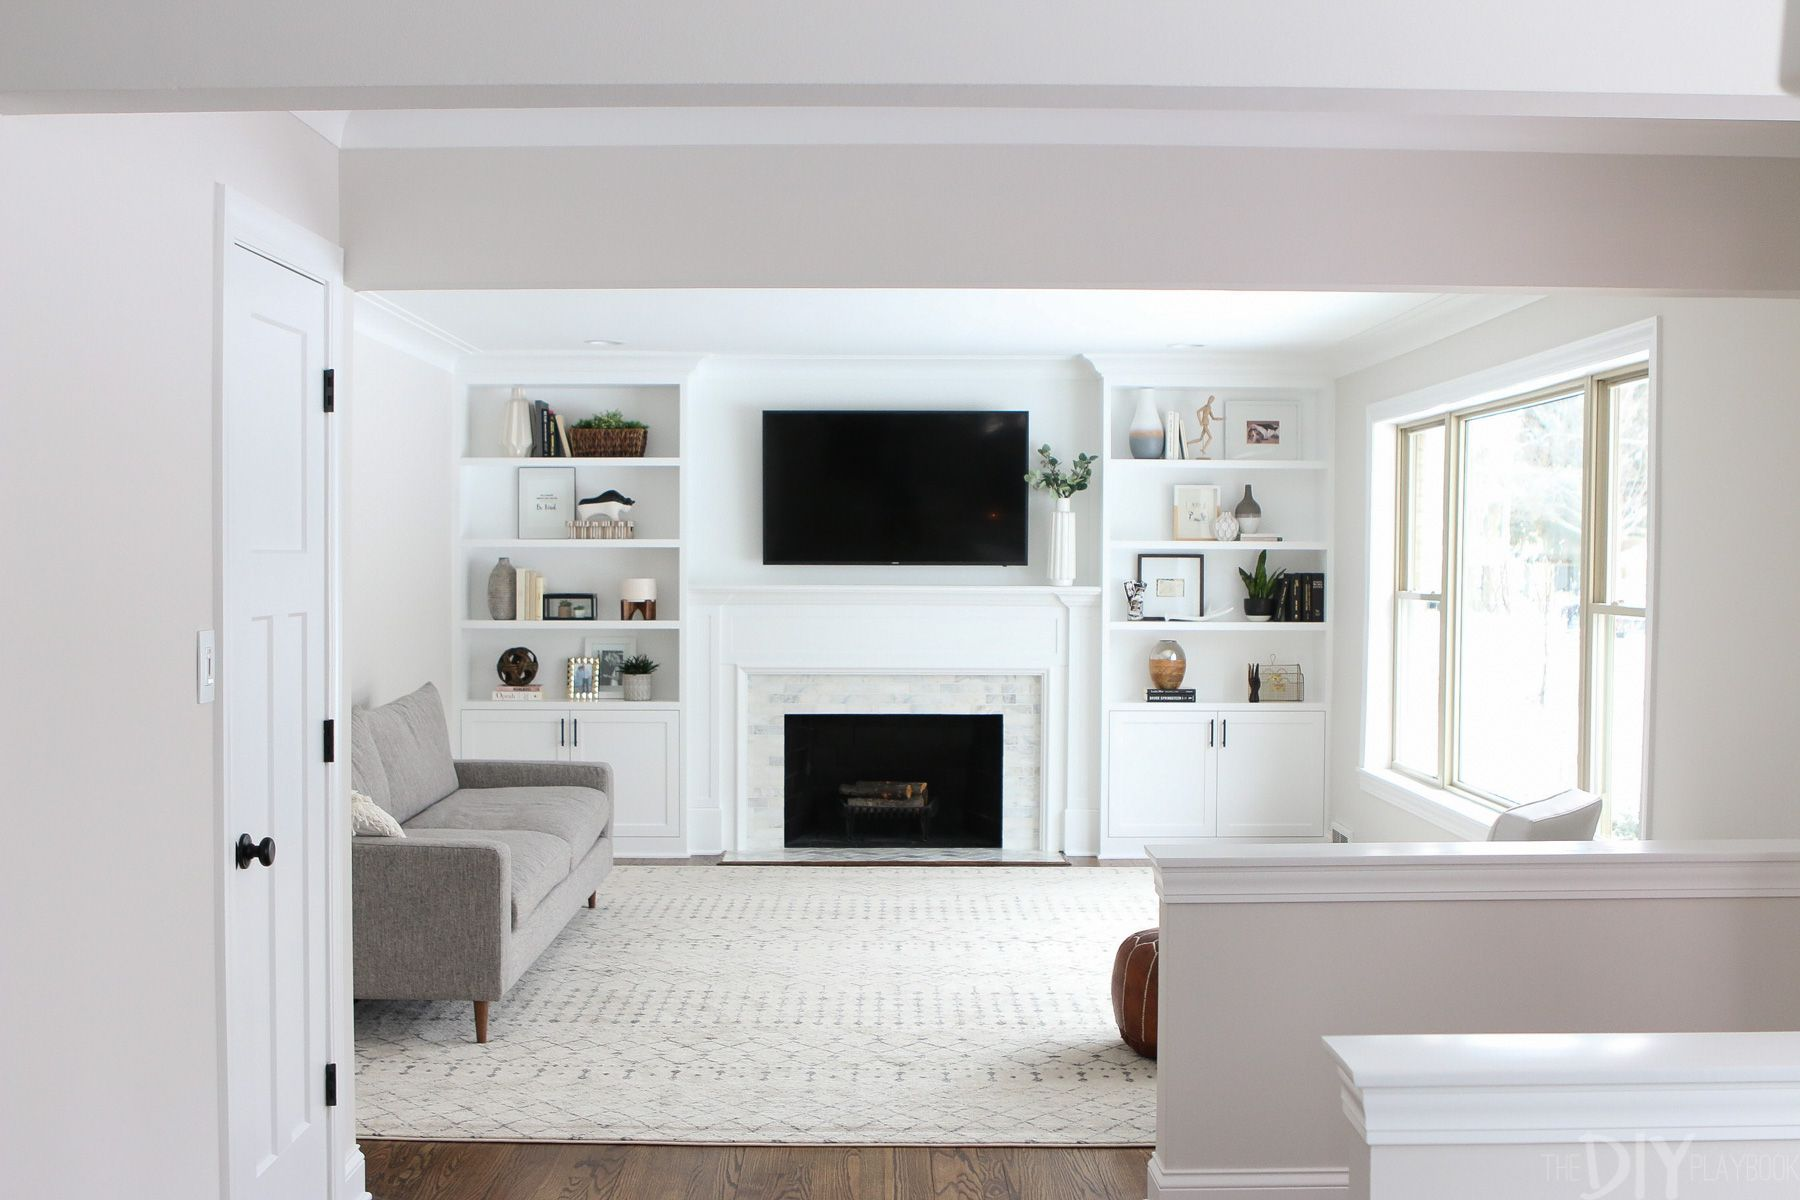 White Built Ins Around The Fireplace Before And After The Diy Playbook White Built Ins Fireplace Built Ins Living Room Remodel